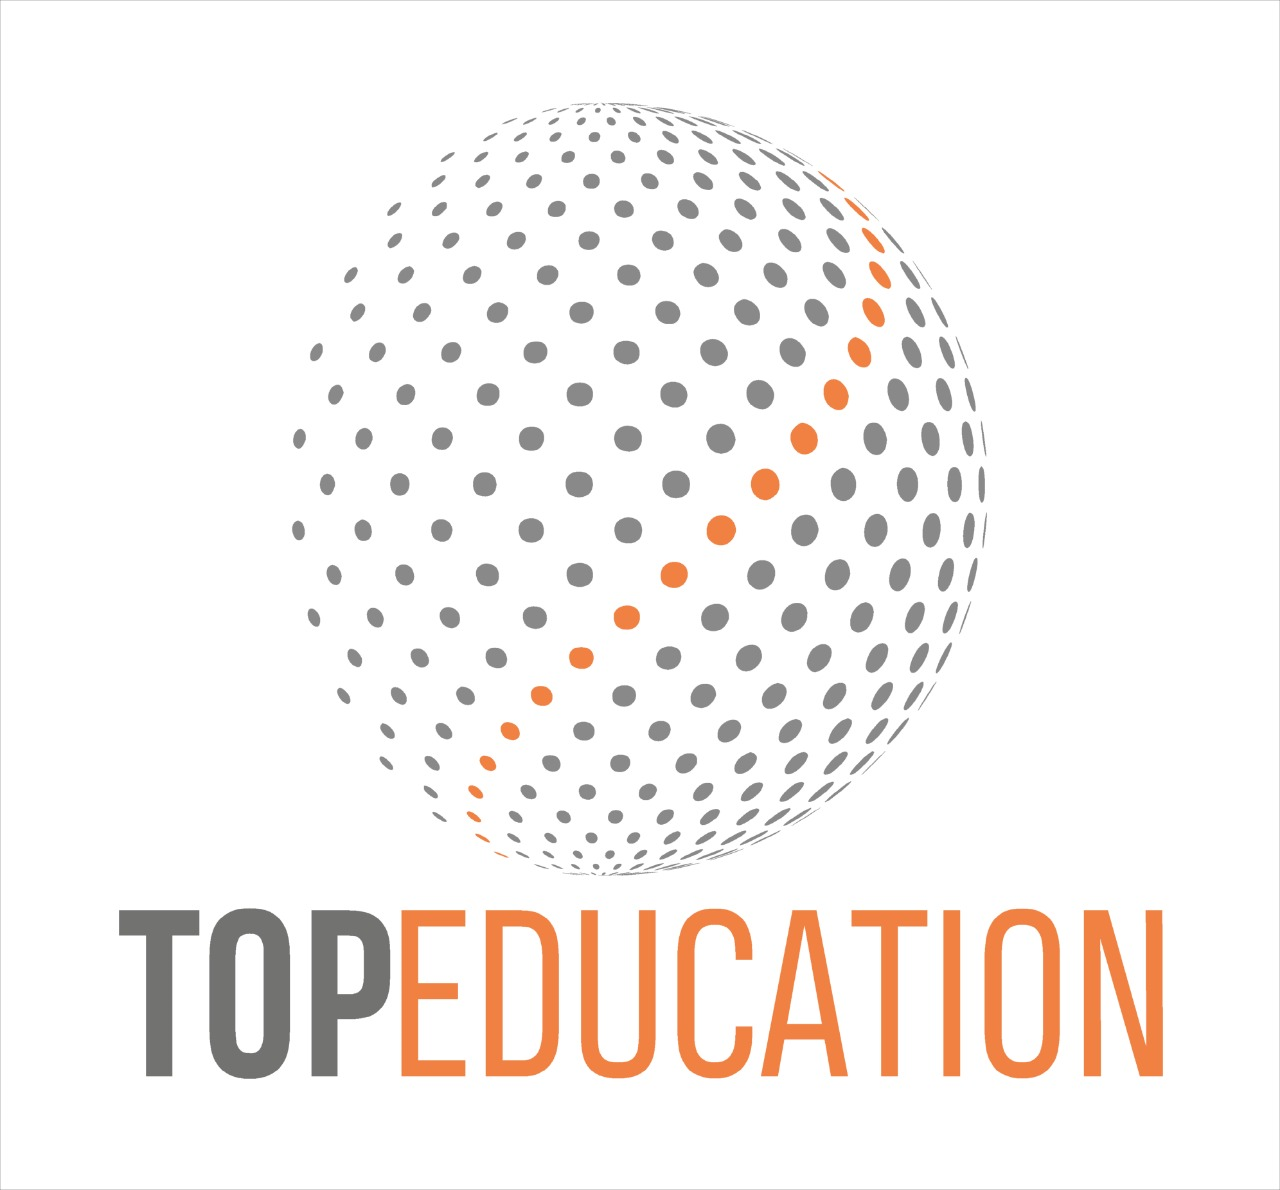 EDUCATION TOP